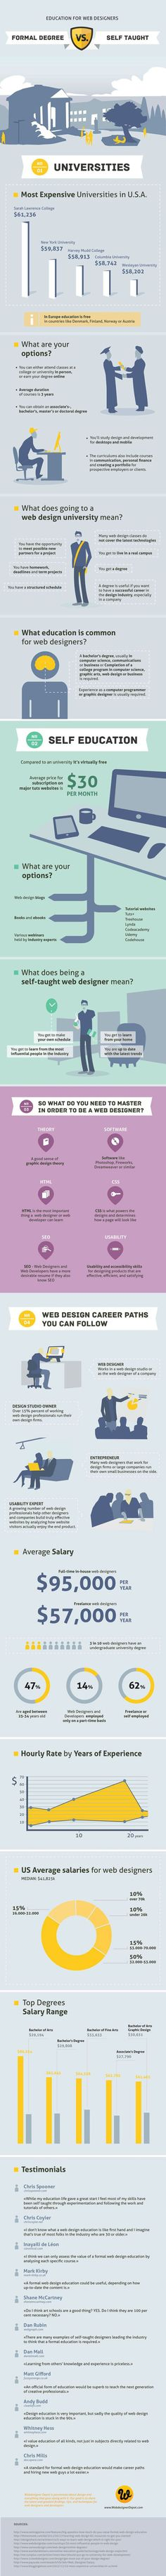 Educational : Education for Web Designers: Formal Degree vs Self Taught [Infographic]